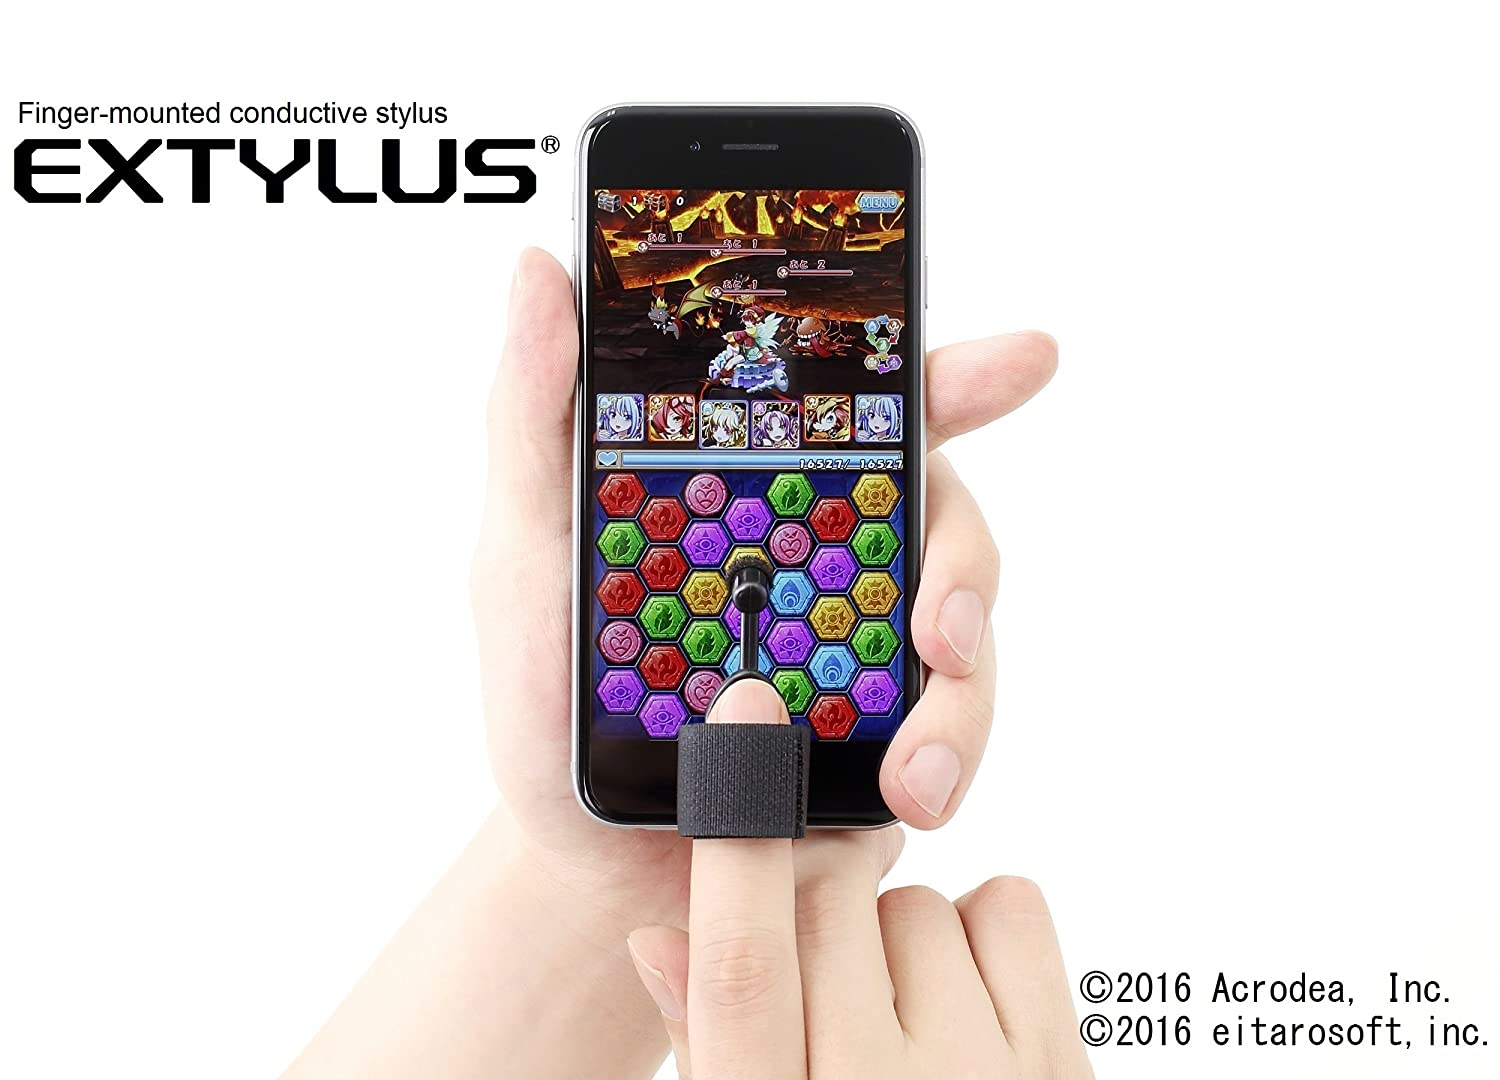 Miyuki Glove Co Ltd Finger Mounted Conductive Stylus Making Traces For Capacitive Touchscreens Electrical Extylus Touch Screen Smartphonecell Phonetablets Computers Accessories